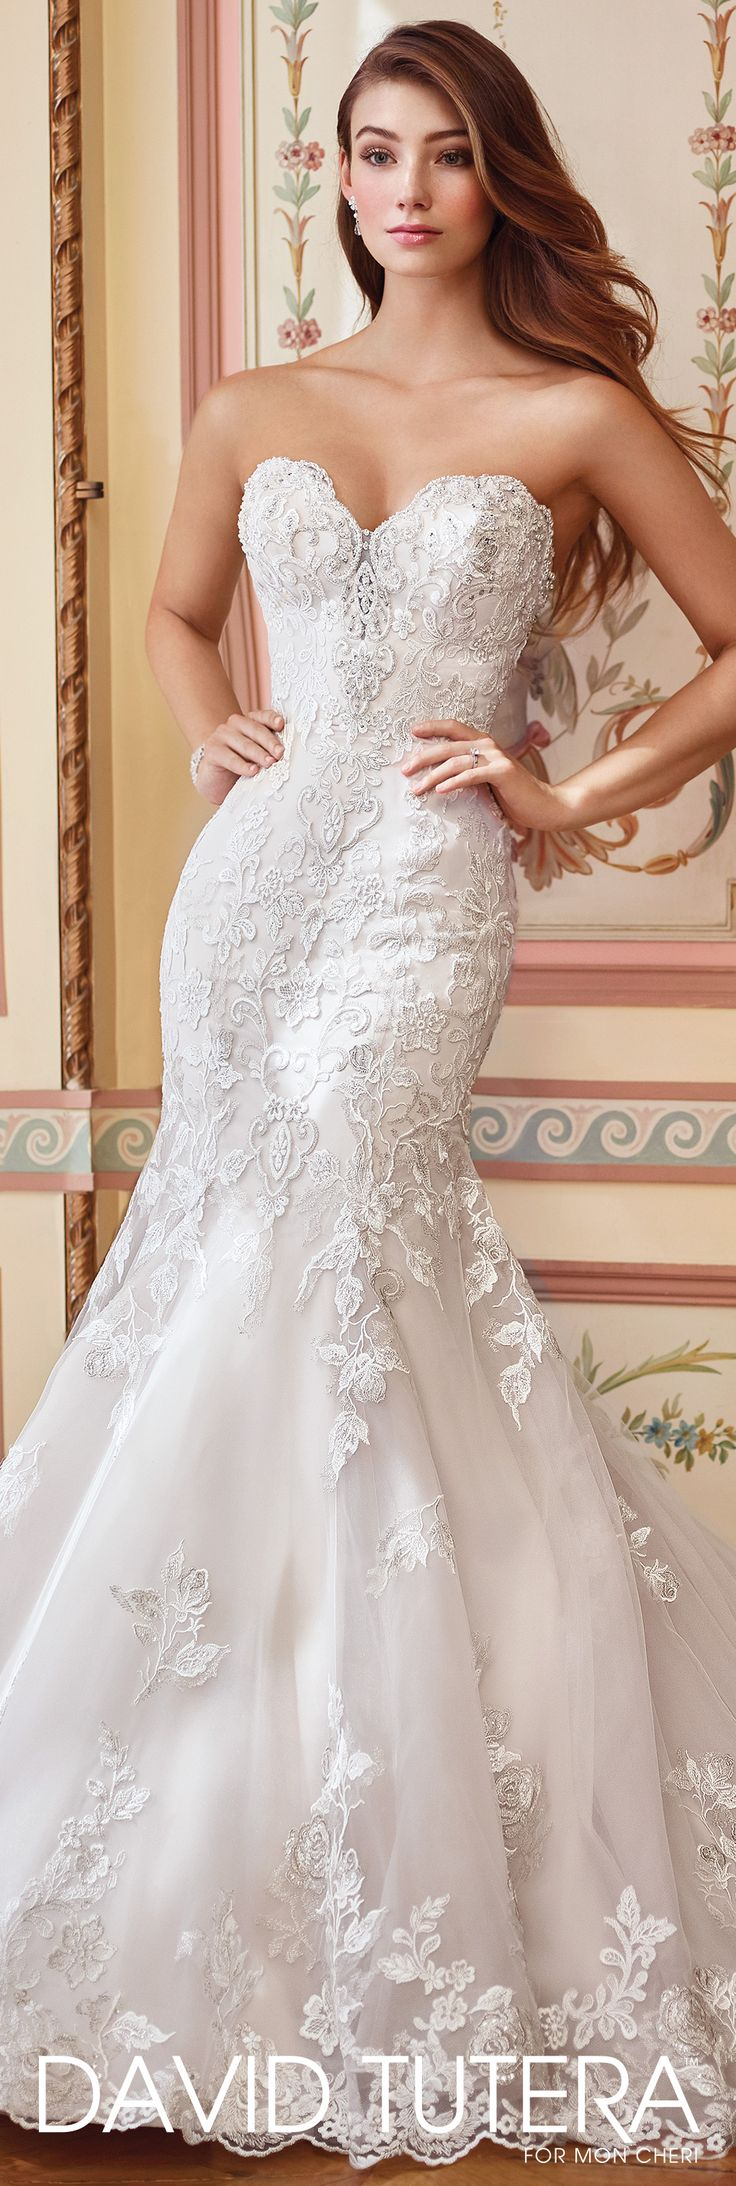 Strapless embroidered Schiffli lace on tulle over organza and satin mermaid gown with plunging scalloped sweetheart neckline and illusion modesty panel - David Tutera for Mon Cheri - 117284 Danae